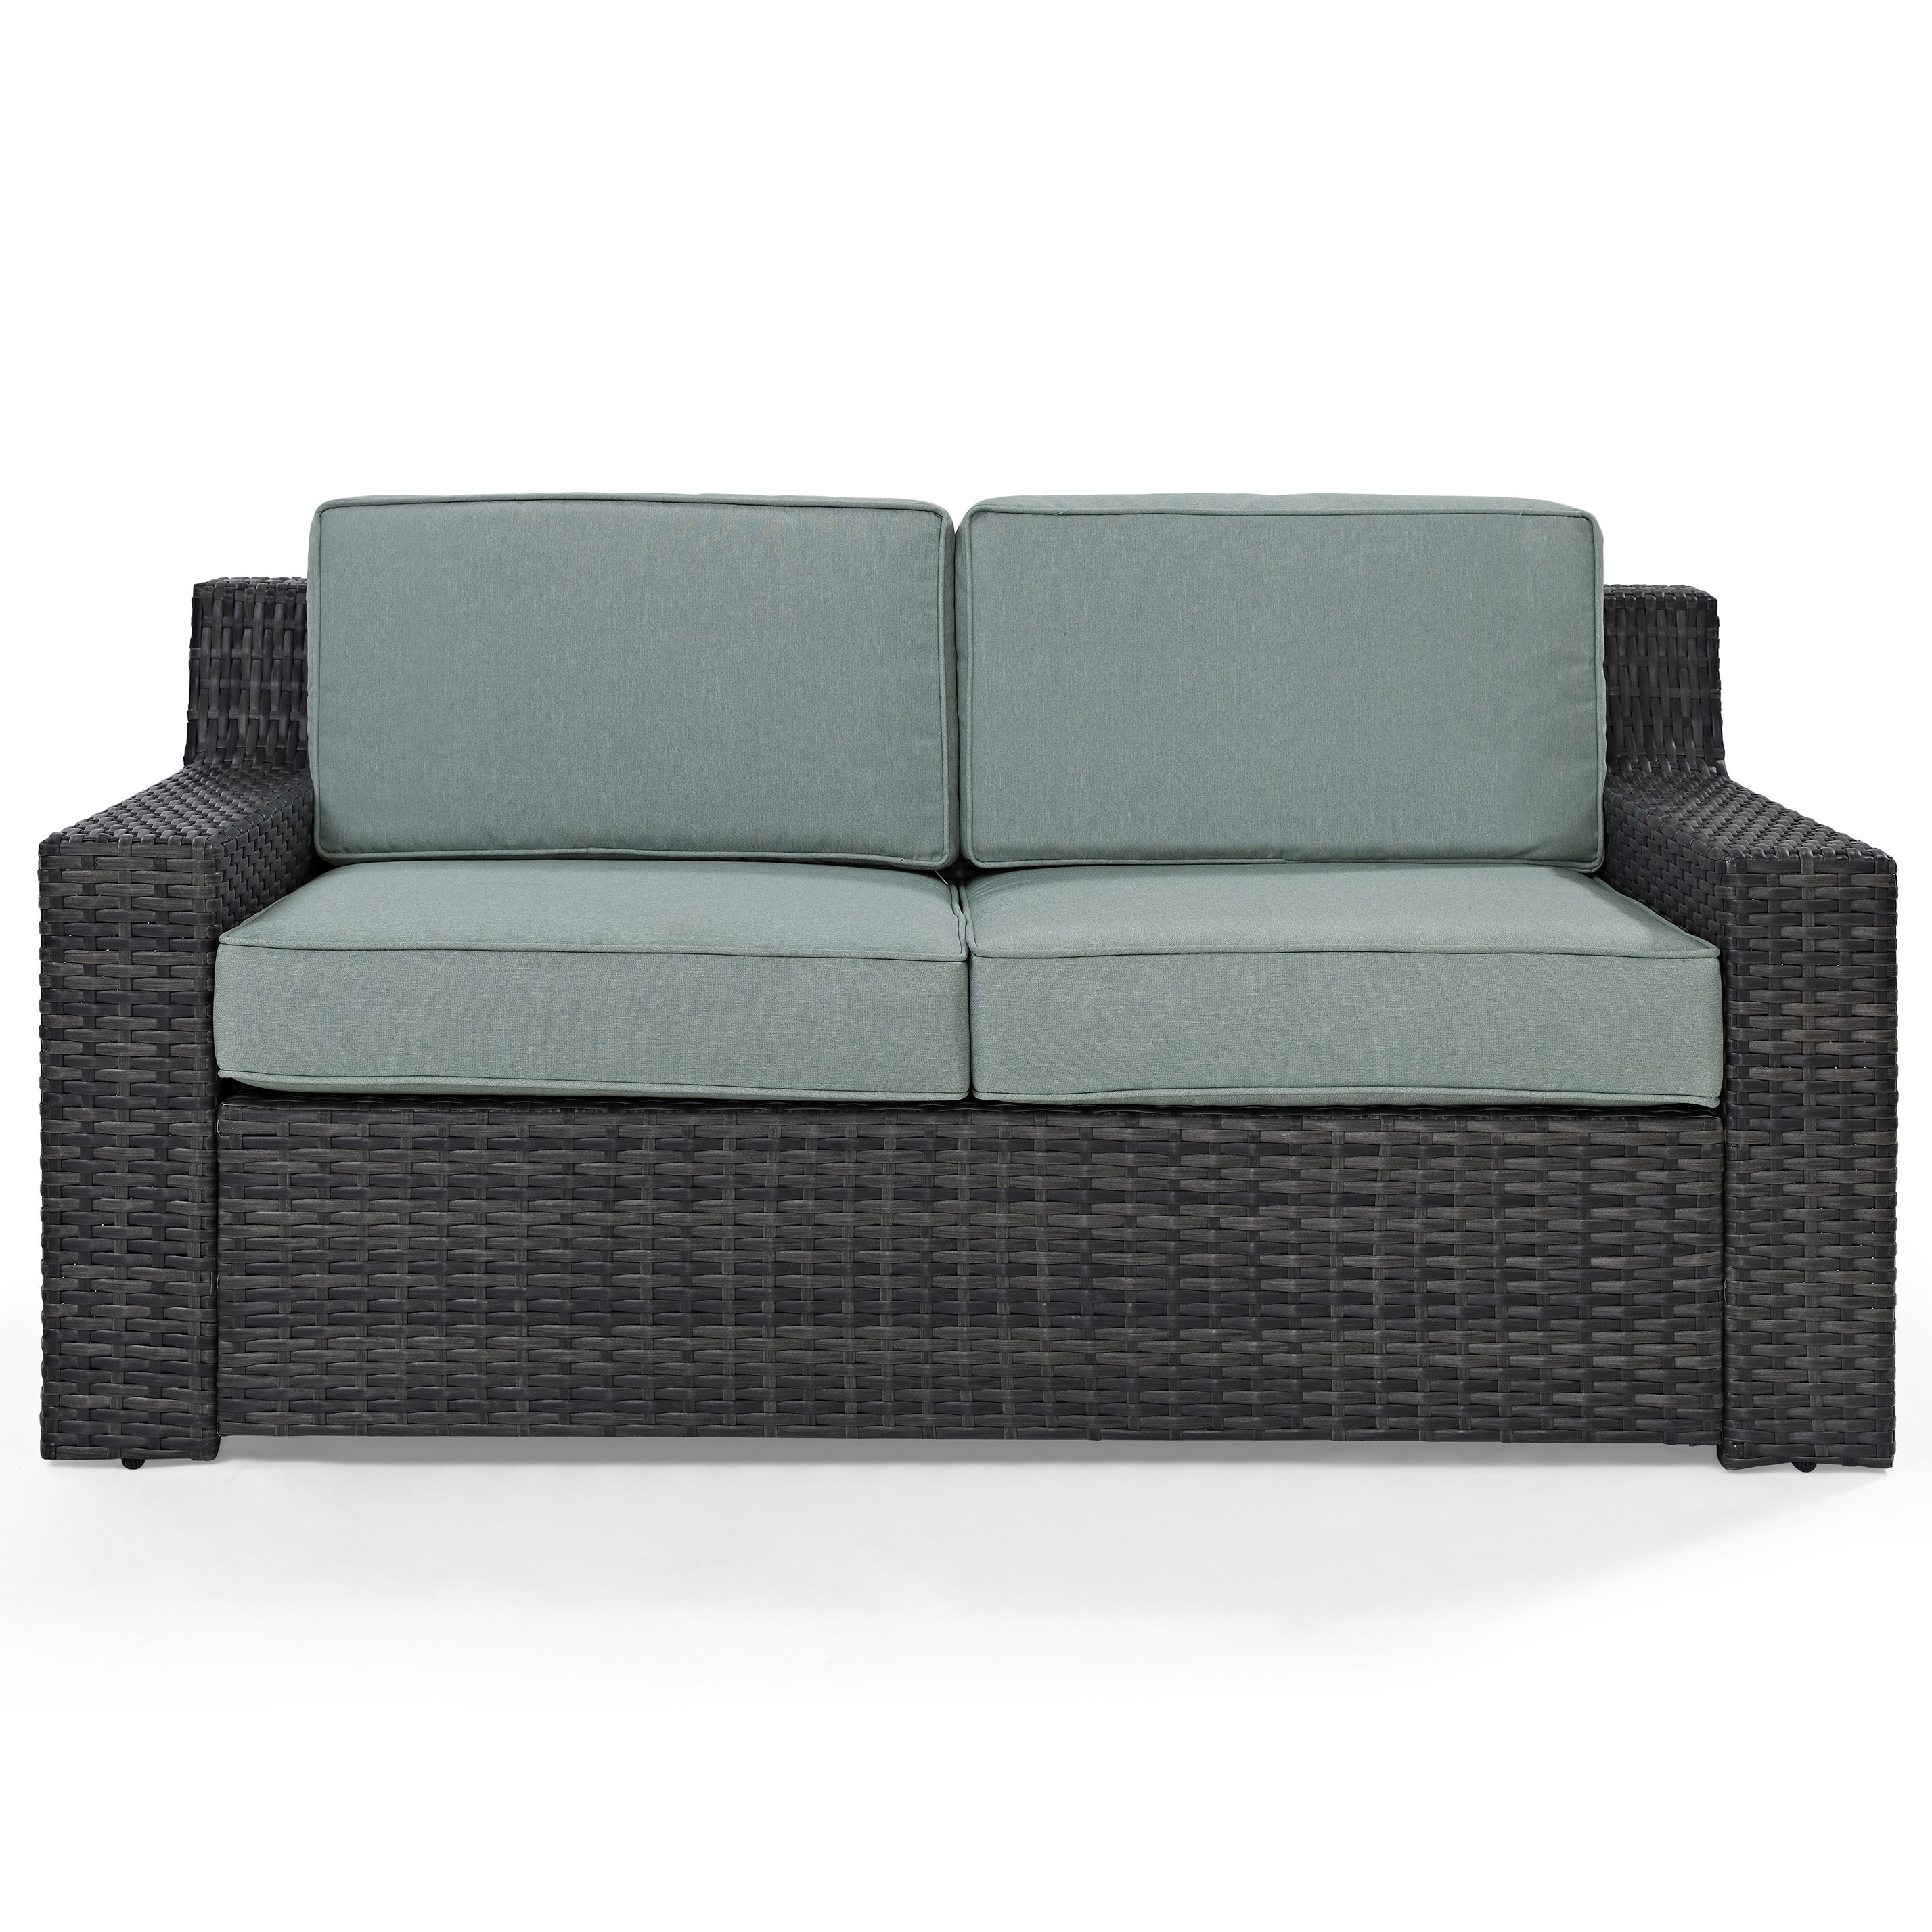 Mosca Patio Loveseats With Cushions For Well Liked Linwood Loveseat With Cushions (View 9 of 20)